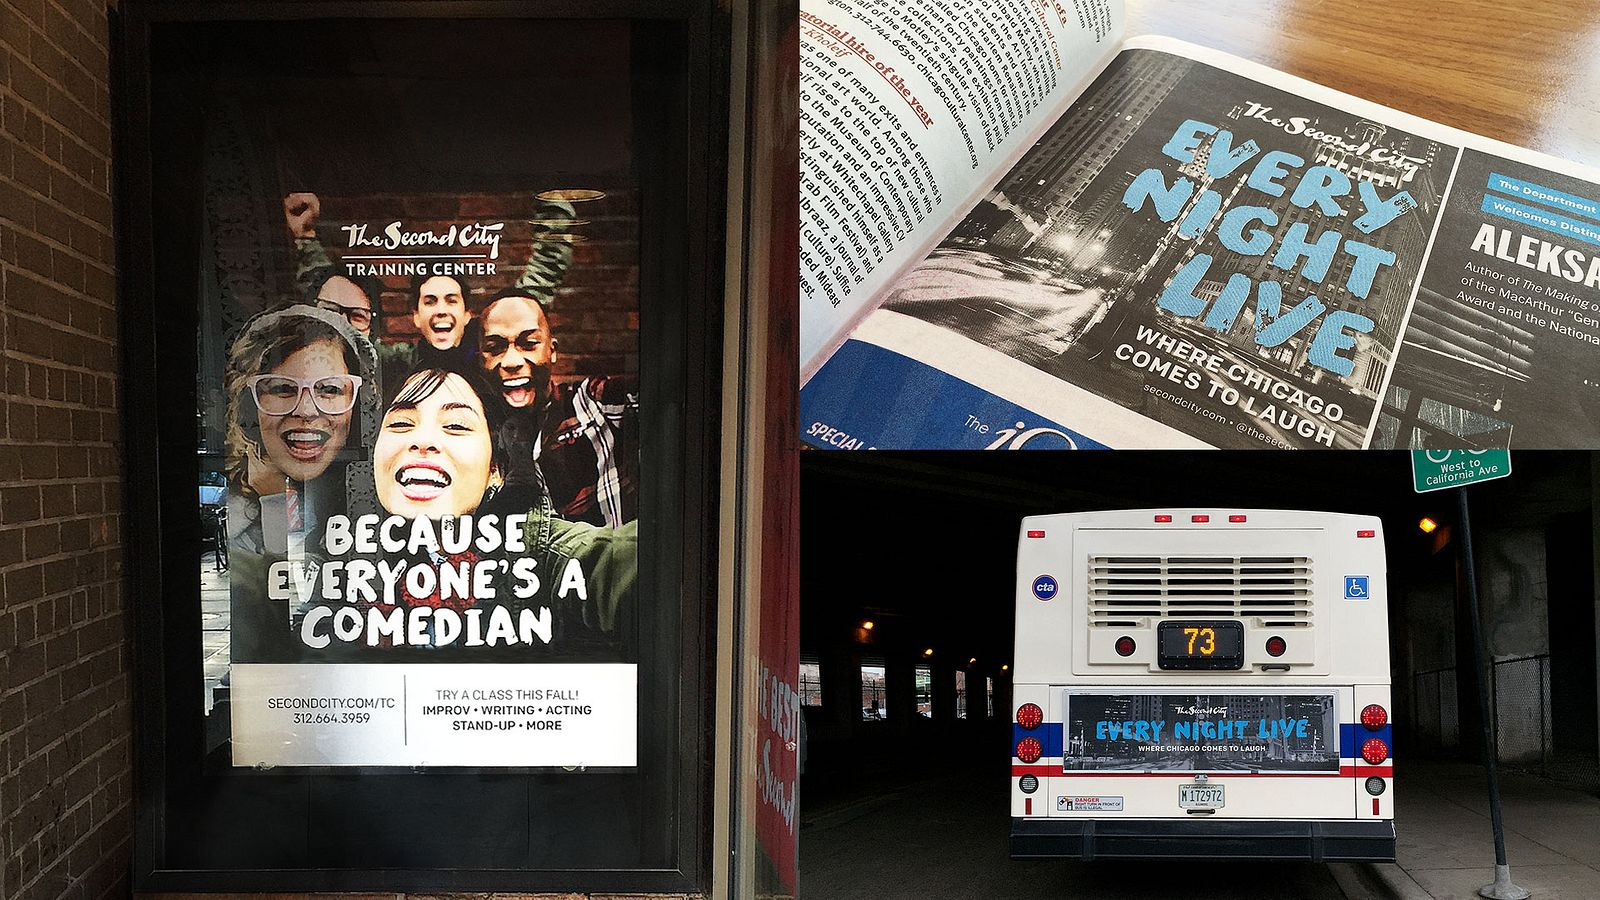 Second City OOH advertising, branding by Someoddpilot